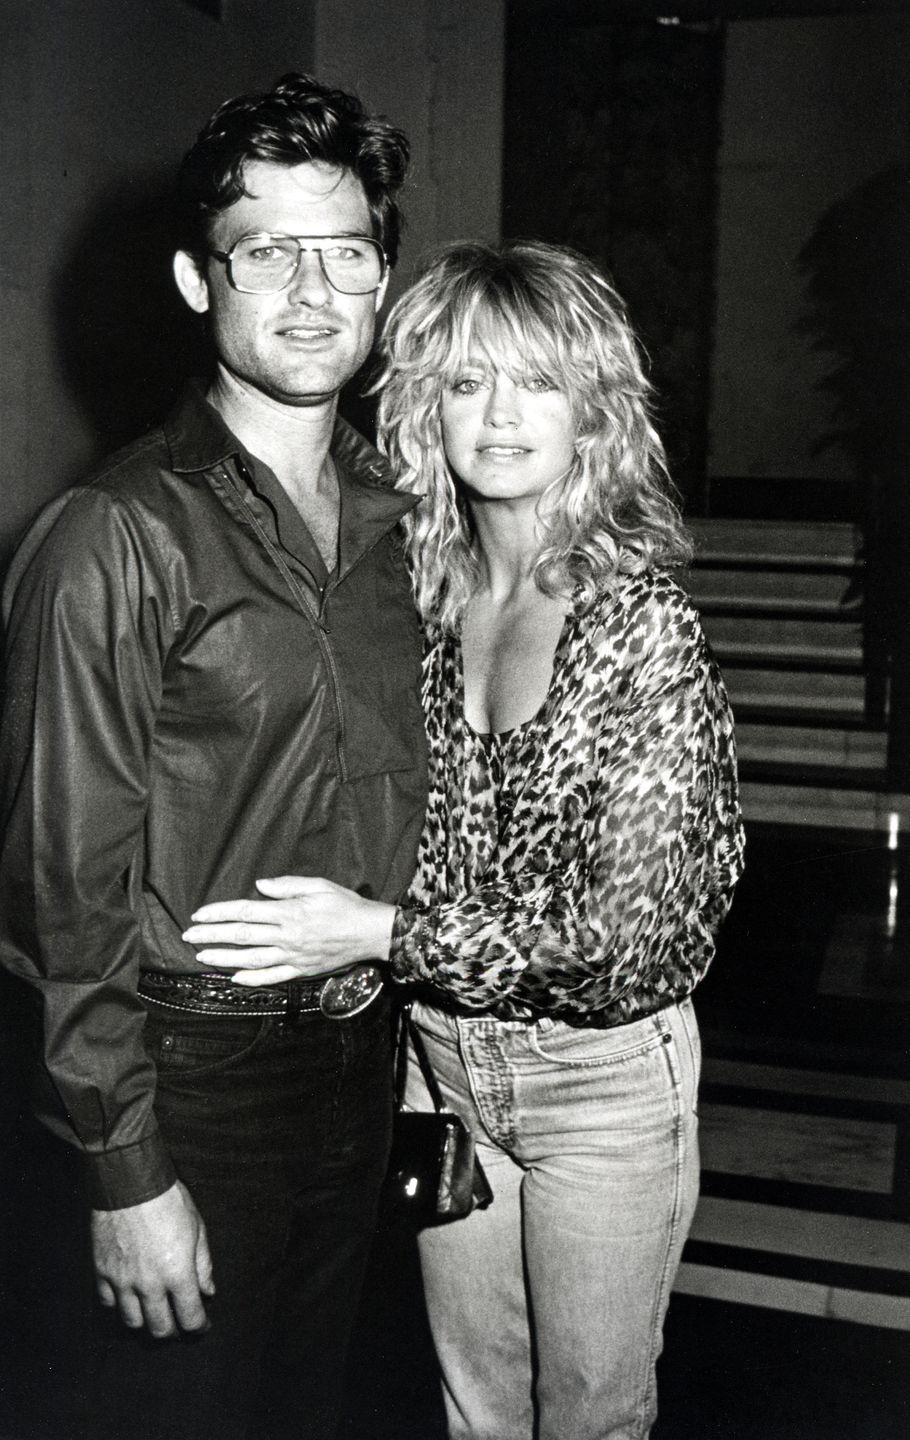 <p>Hawn was married twice and has two children (Kate and Oliver Hudson) with her second husband. She has been with Russell since 1984 and they have a son Wyat Russell. Plus they're really cute on Instagram, you should follow them.</p>